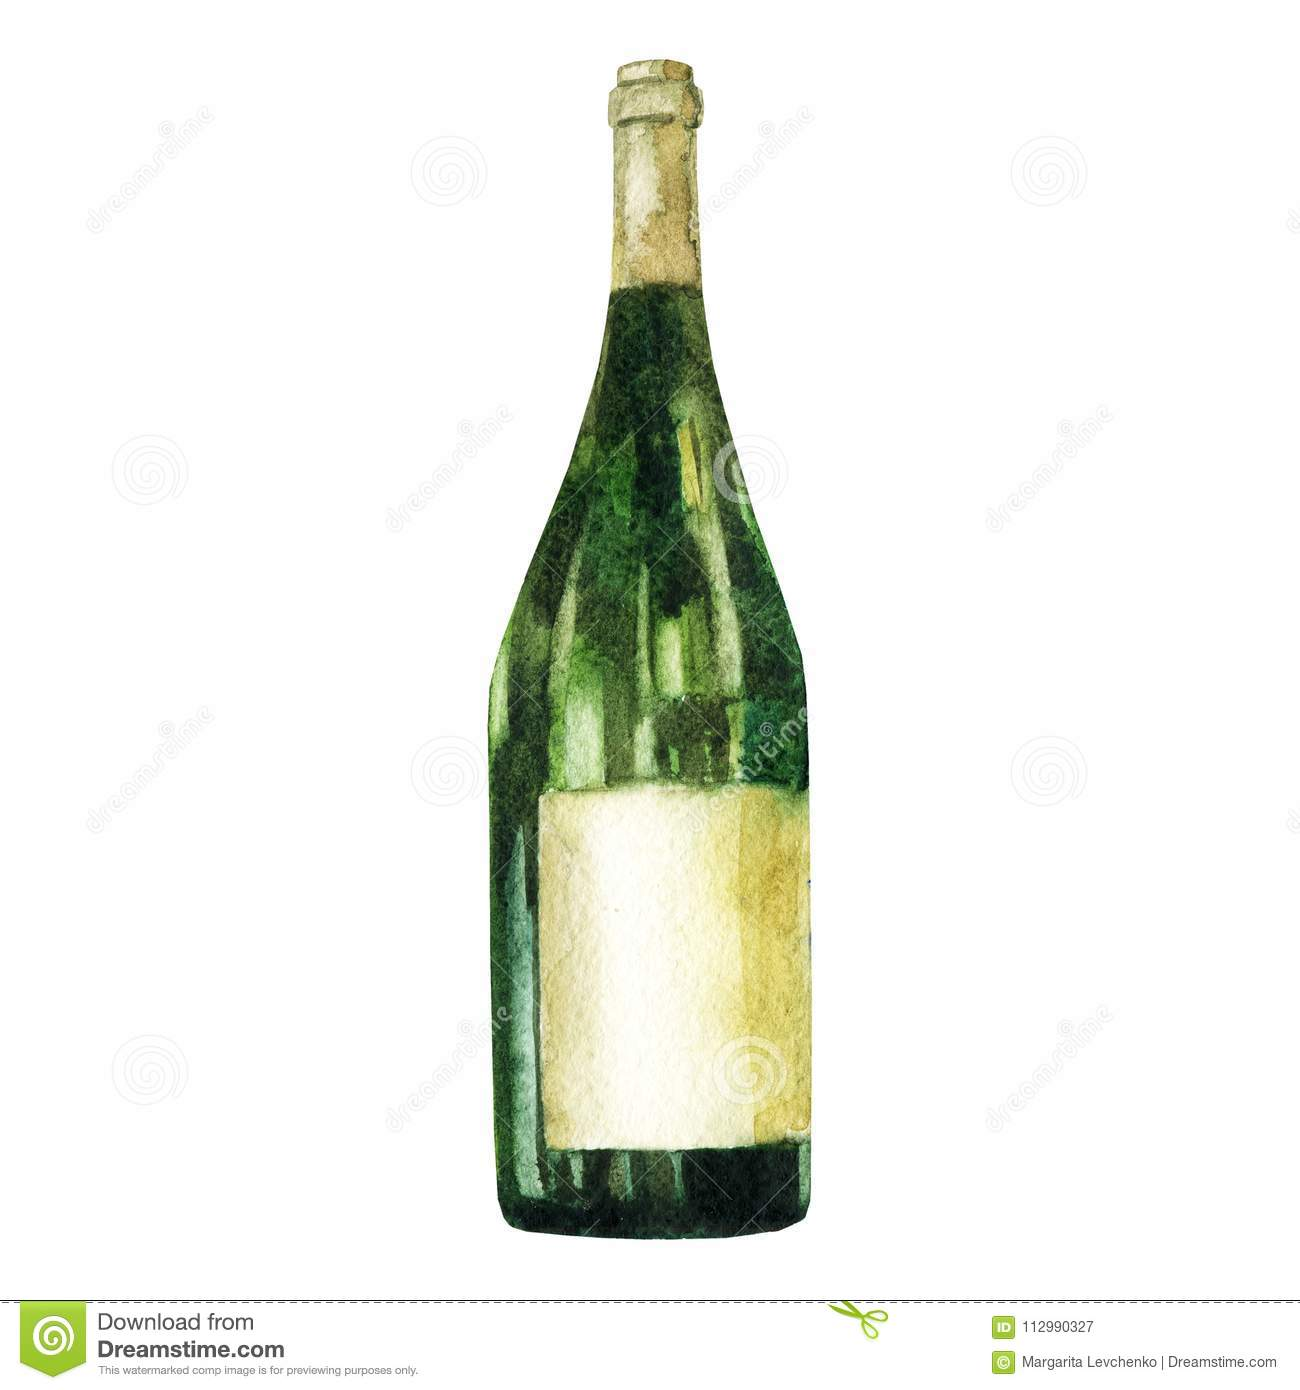 Watercolor illustration. Image of a green bottle of wine.